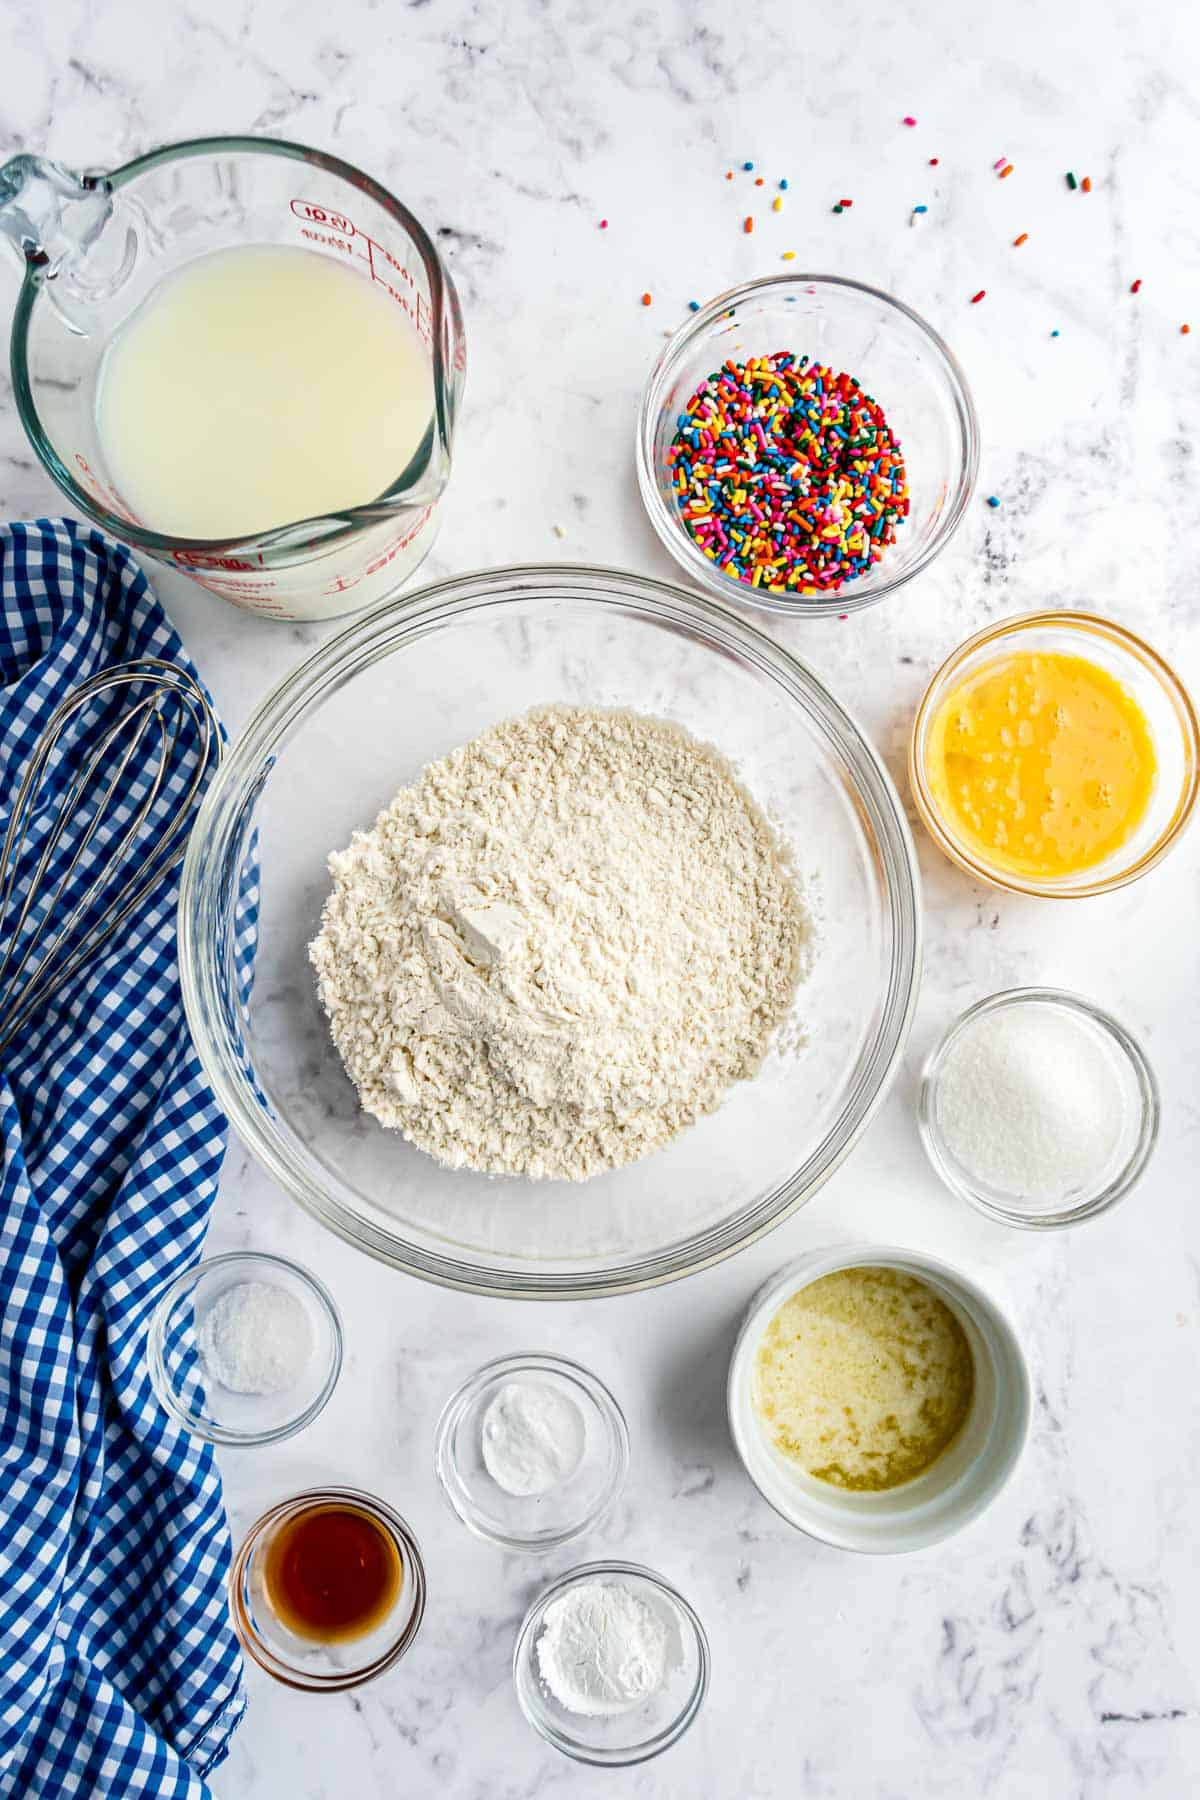 Clear glass bowls of ingredients: flour, eggs, vanilla, milk, sprinkles, and more.